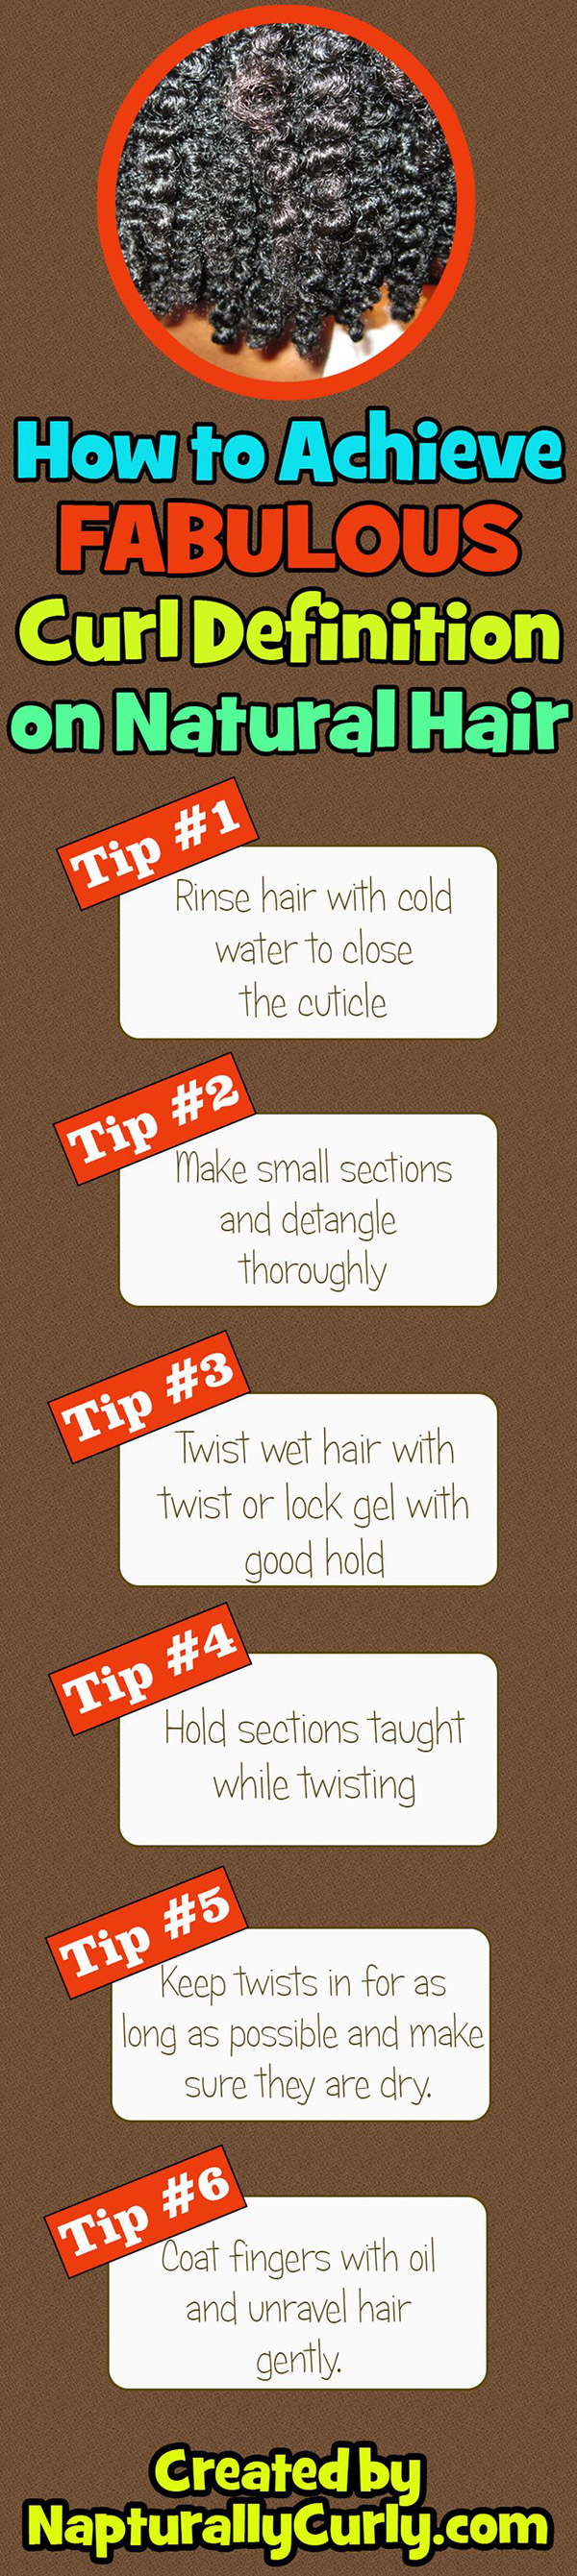 naturalhairtips17